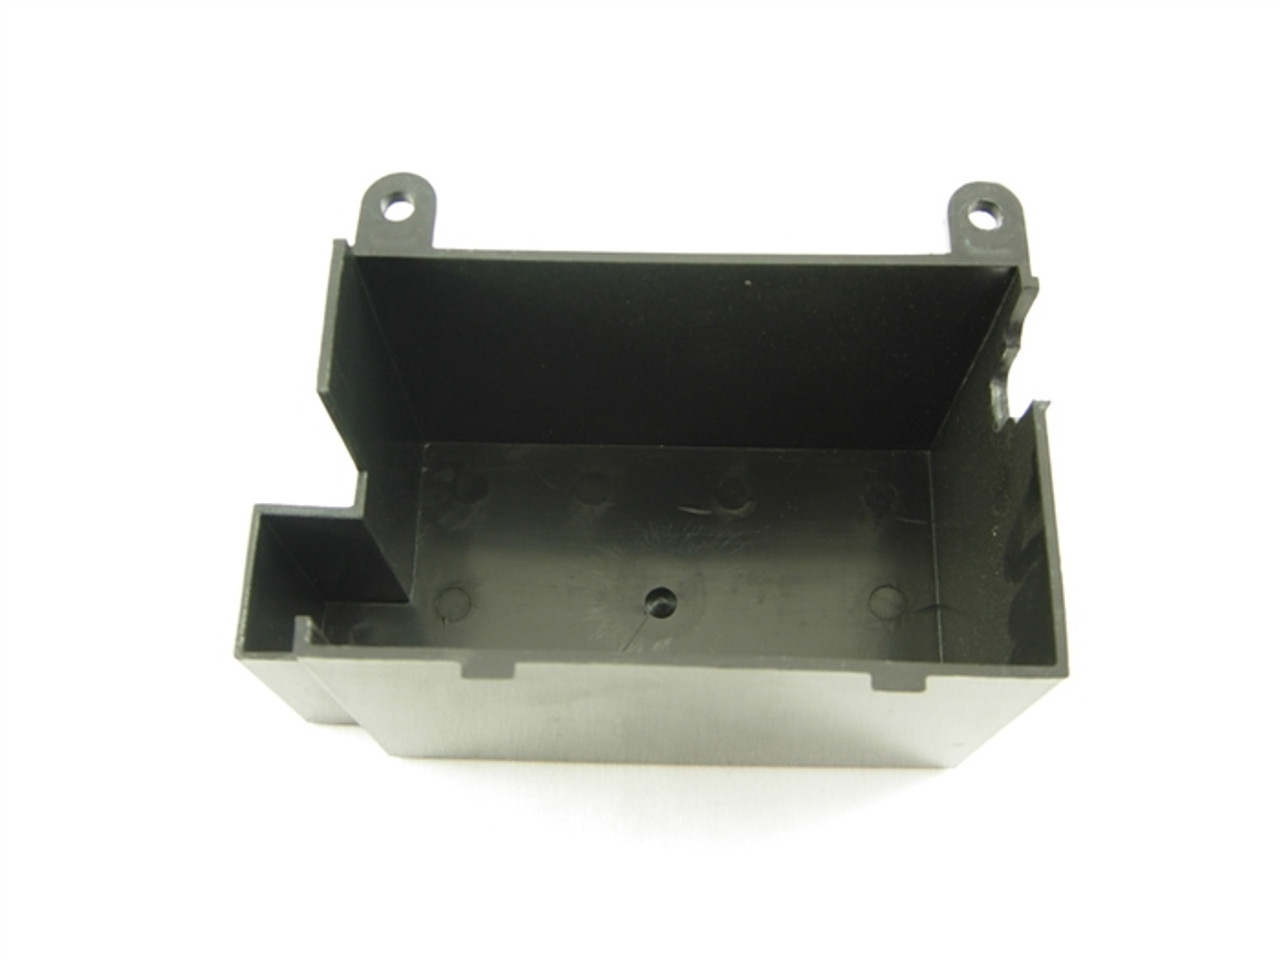 BATTERY COVER 11837-A103-1